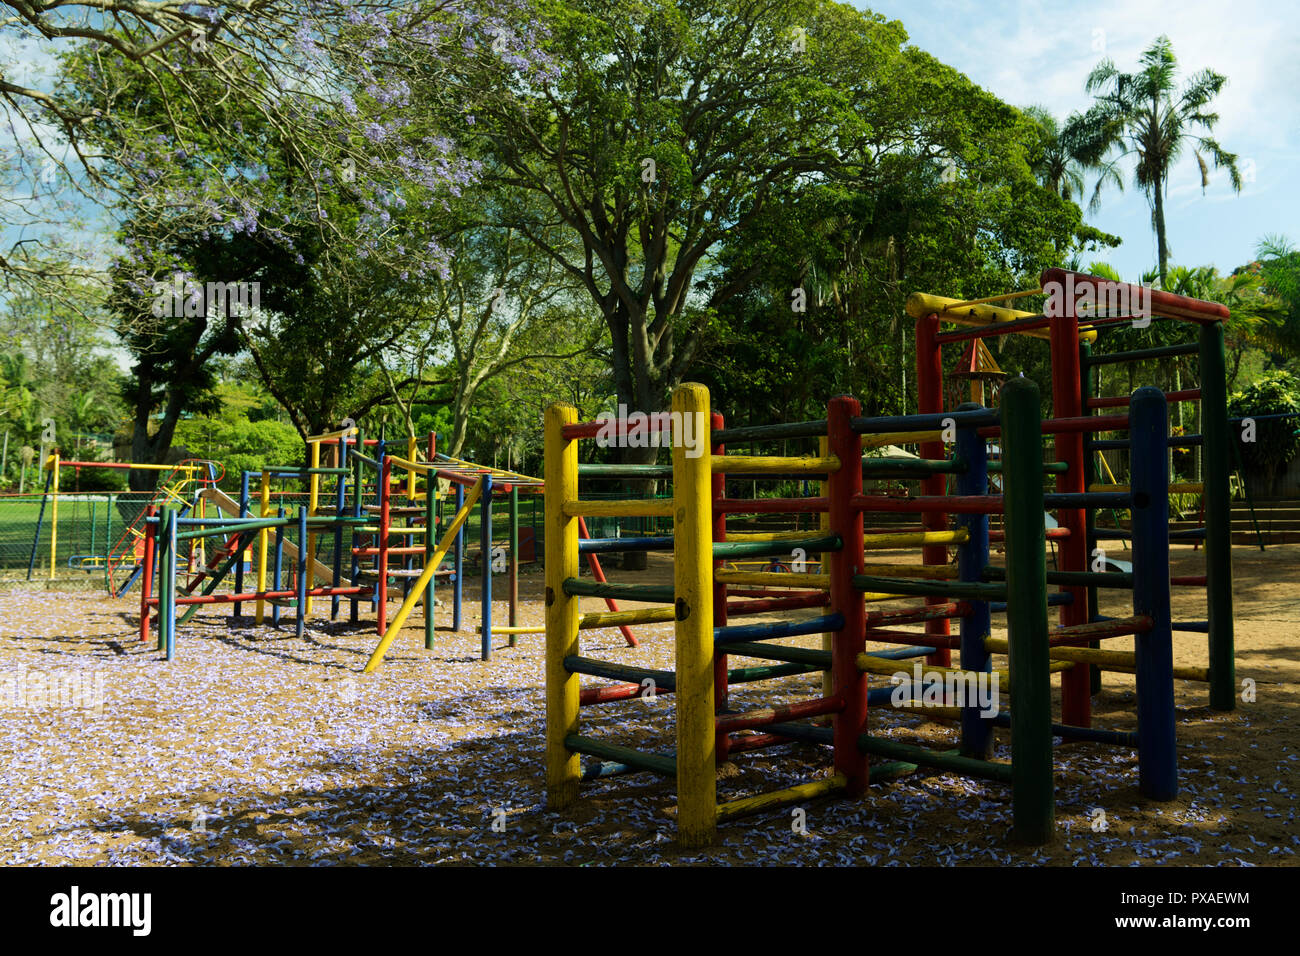 Colourful jungle gym equipment in children's playground at Mitchell Park botanical garden, Durban, South Africa - Stock Image